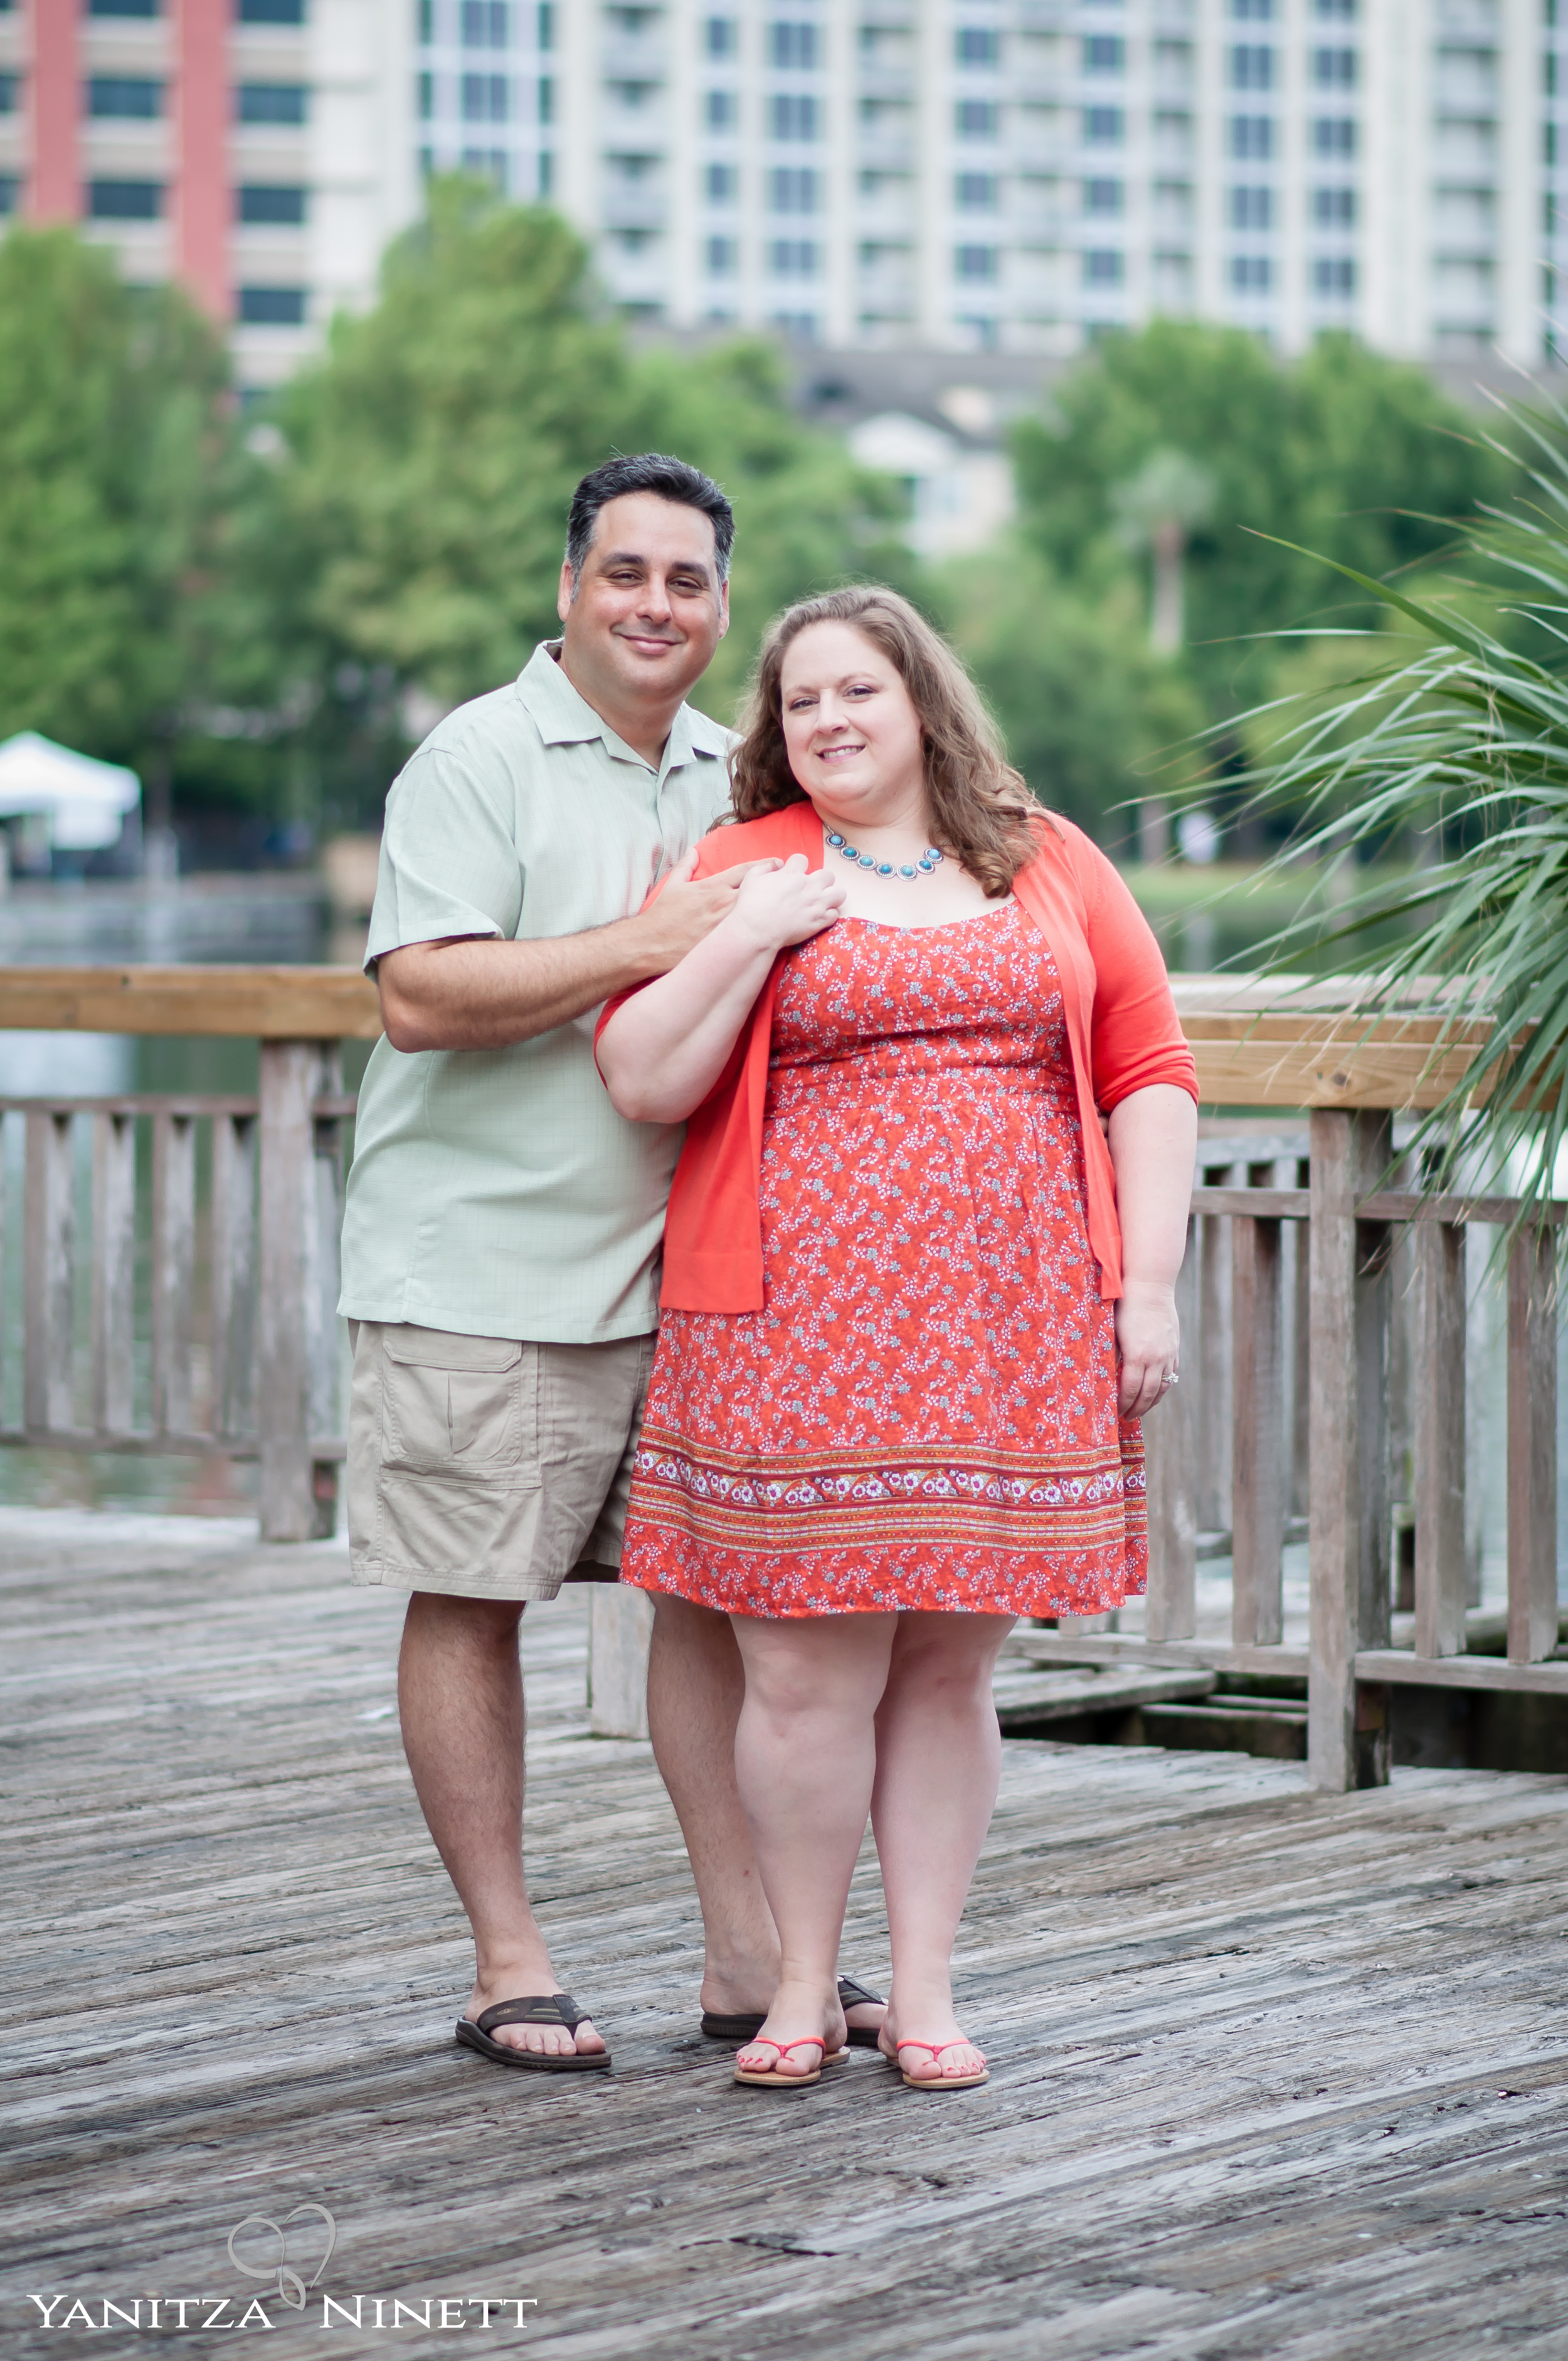 Family Session at Lake Eola Park in Downtown Orlando